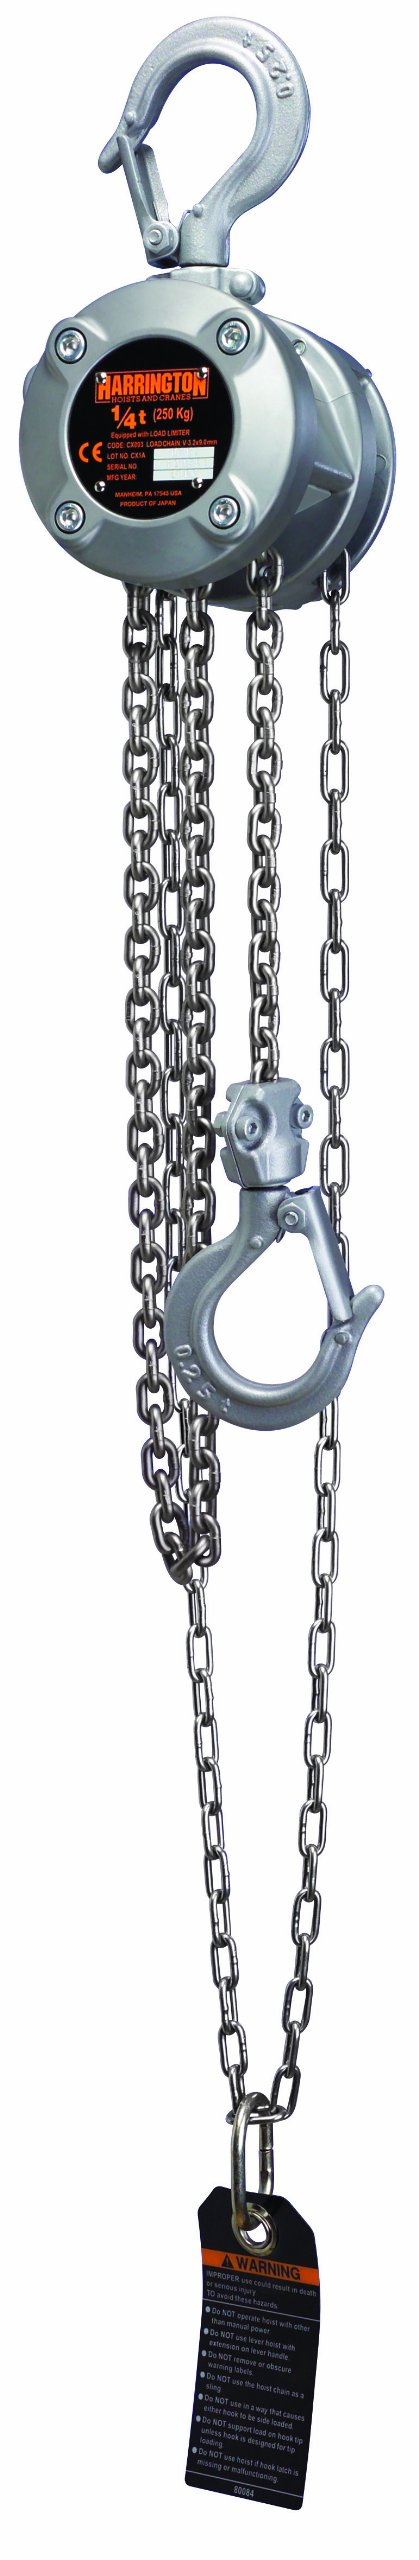 Harrington CX Series Aluminum Mini Hand Chain Hoist, 1/4 Ton Capacity, 20' Lift Height, 16.5' Hand Chain Drop, 8.5'' Headroom by Harrington